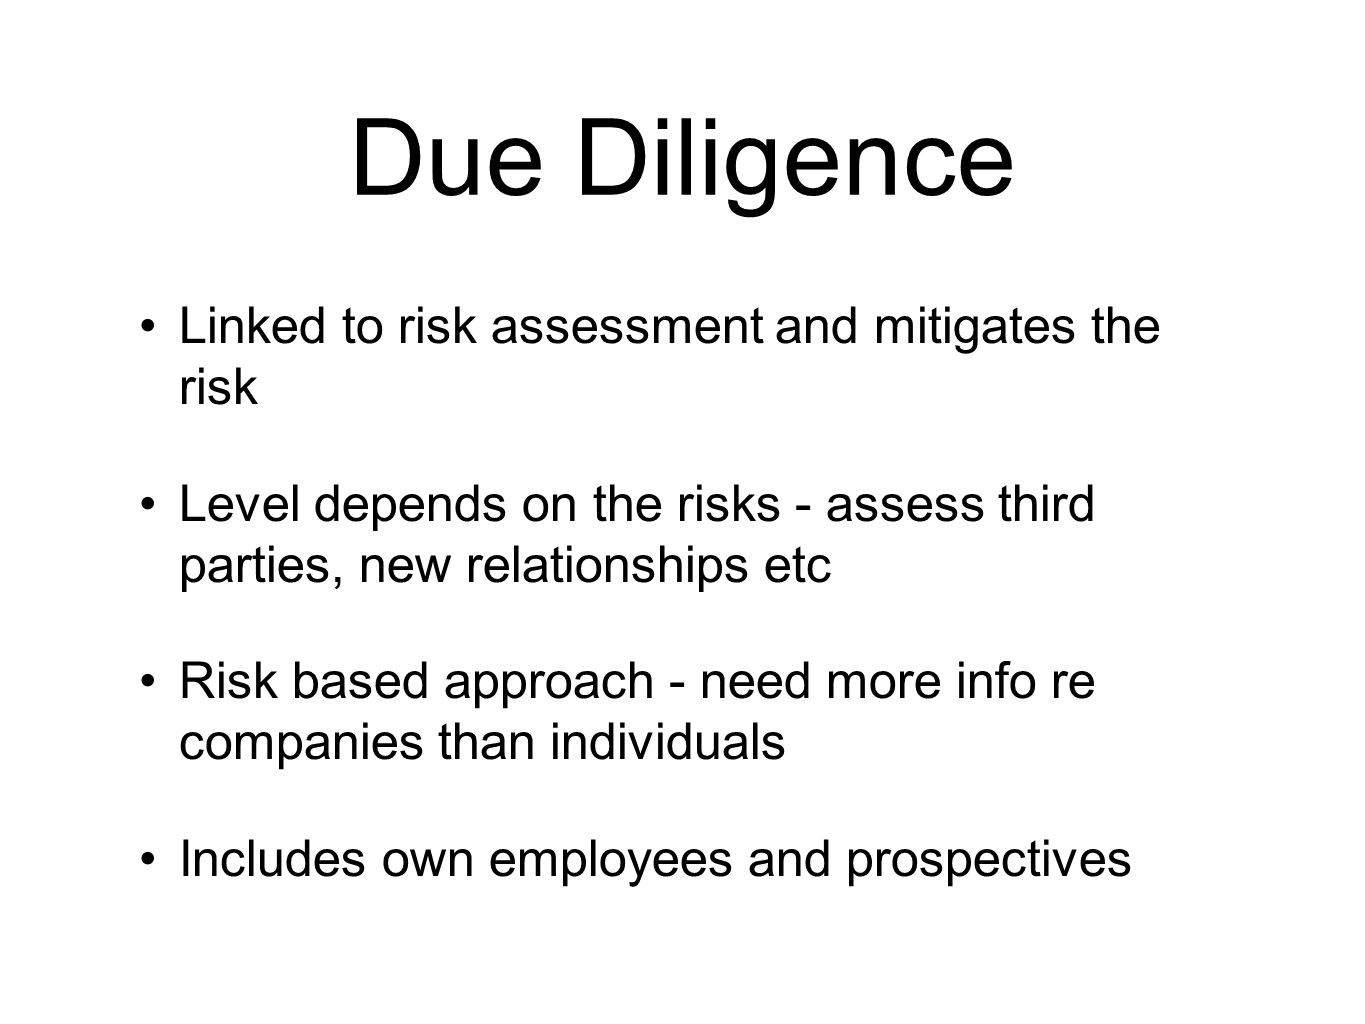 Due Diligence Linked to risk assessment and mitigates the risk Level depends on the risks - assess third parties, new relationships etc Risk based approach - need more info re companies than individuals Includes own employees and prospectives